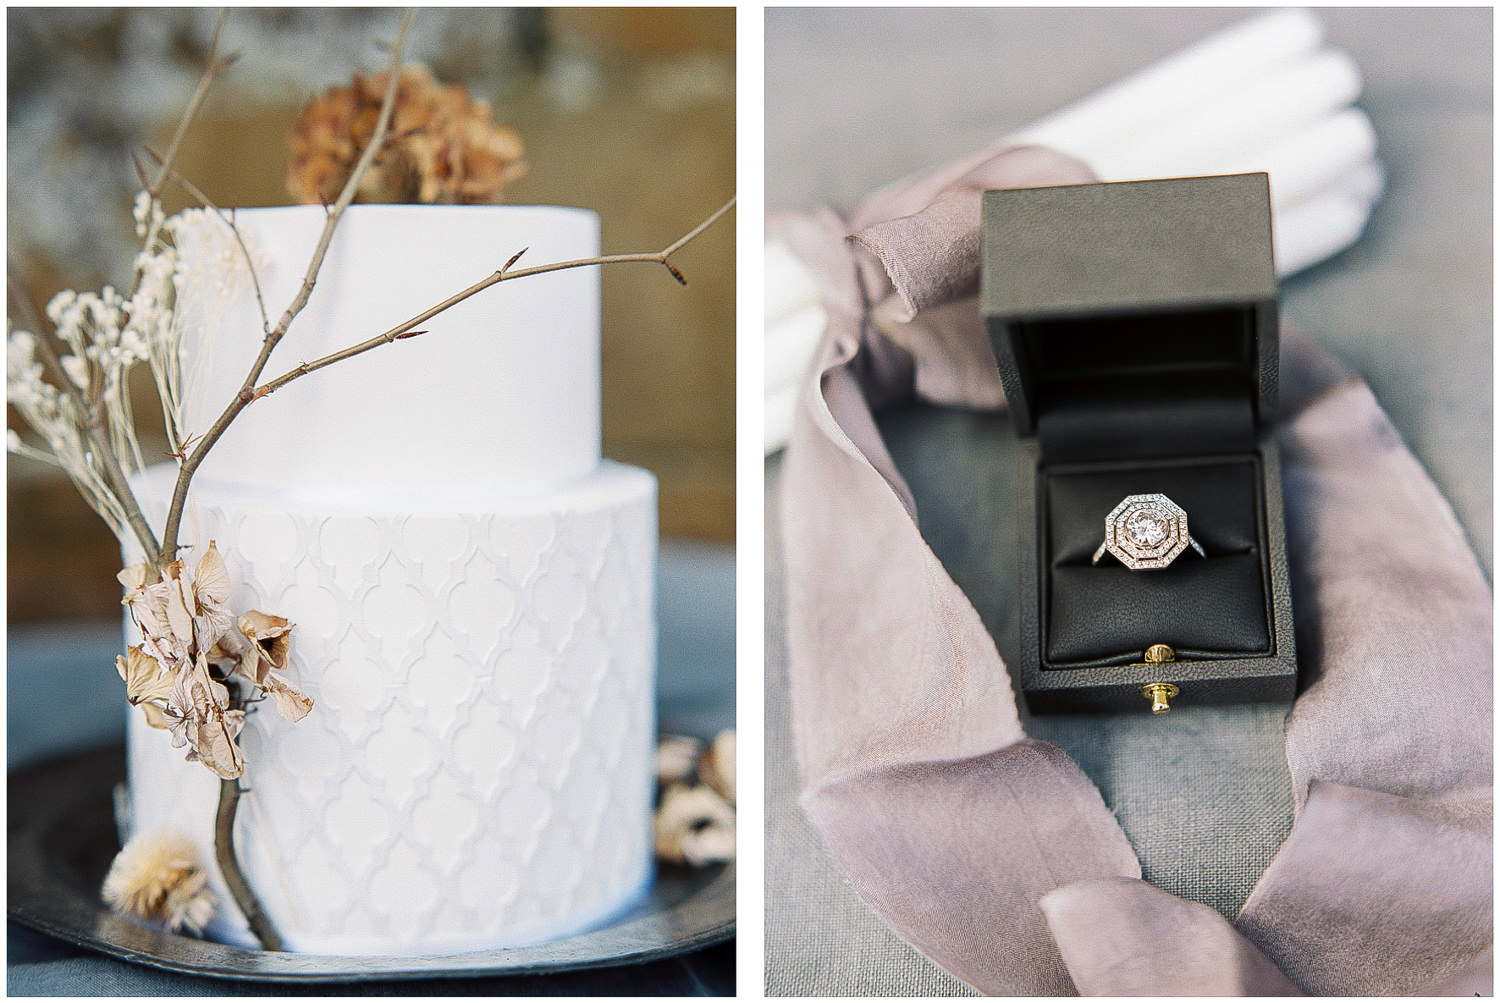 Minimal geometric cake, dried flowers, antique engagement ring